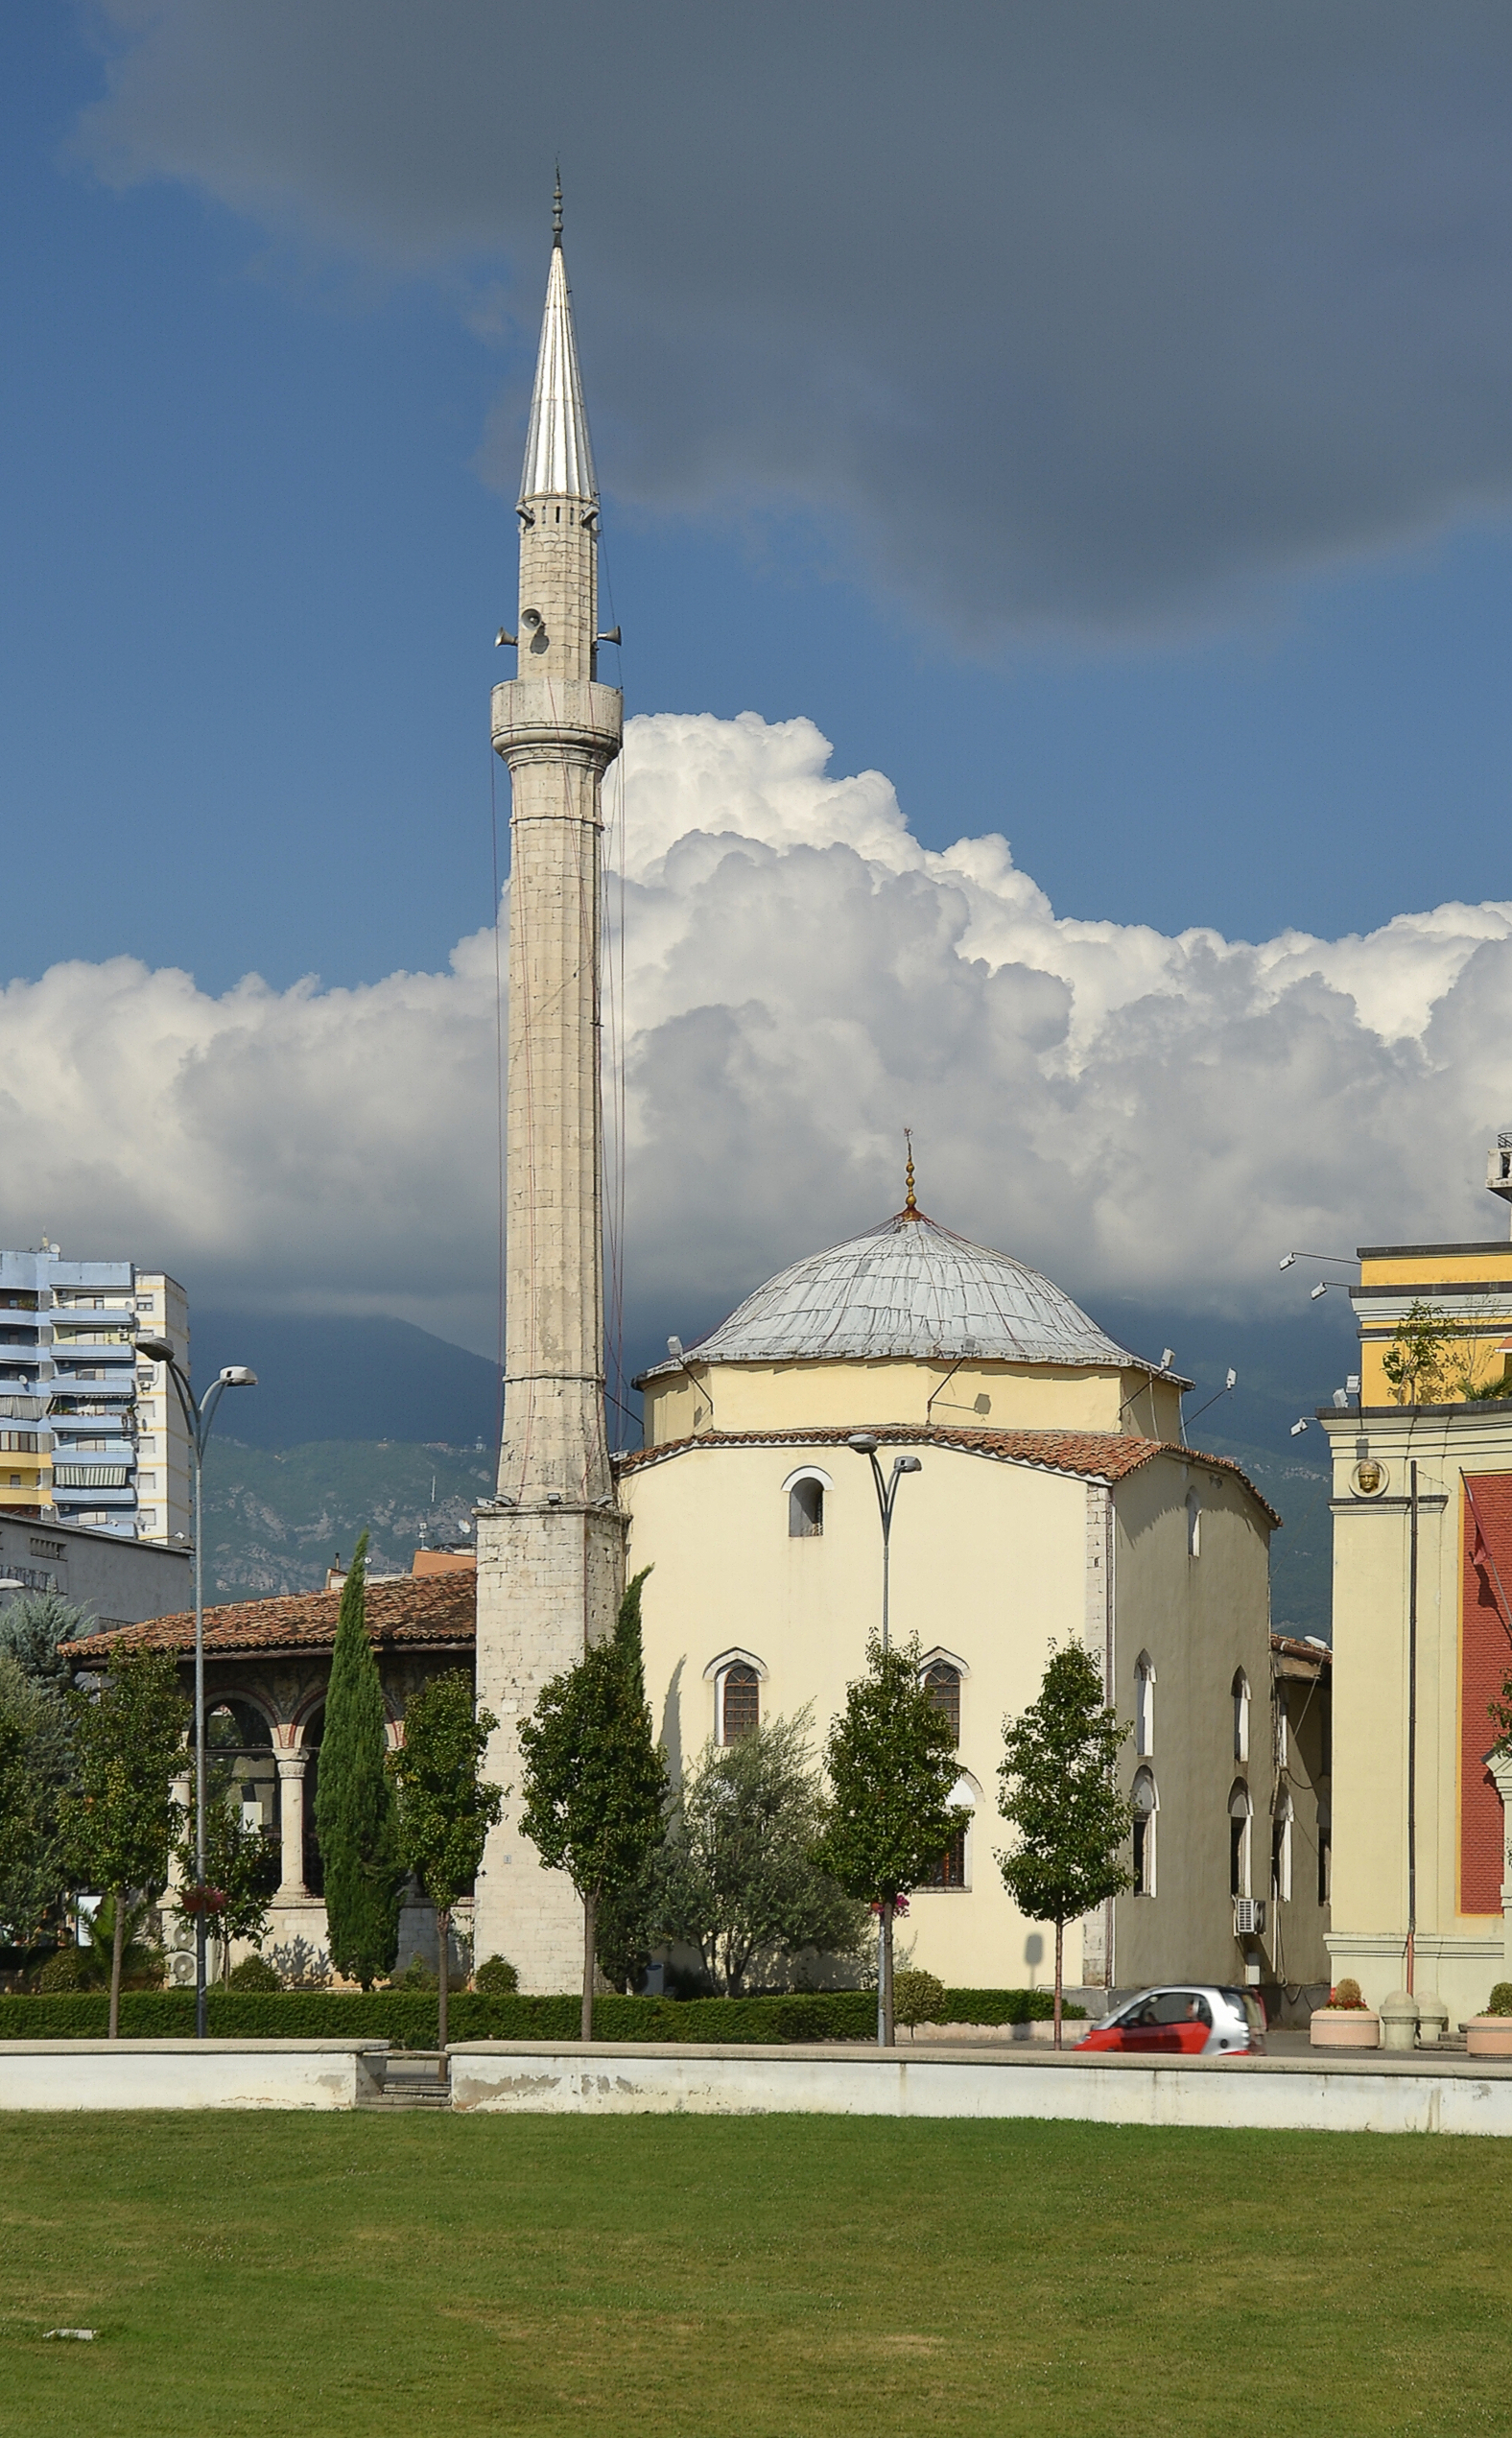 Ethem Bey mosque, Tirana (by Pudelek)